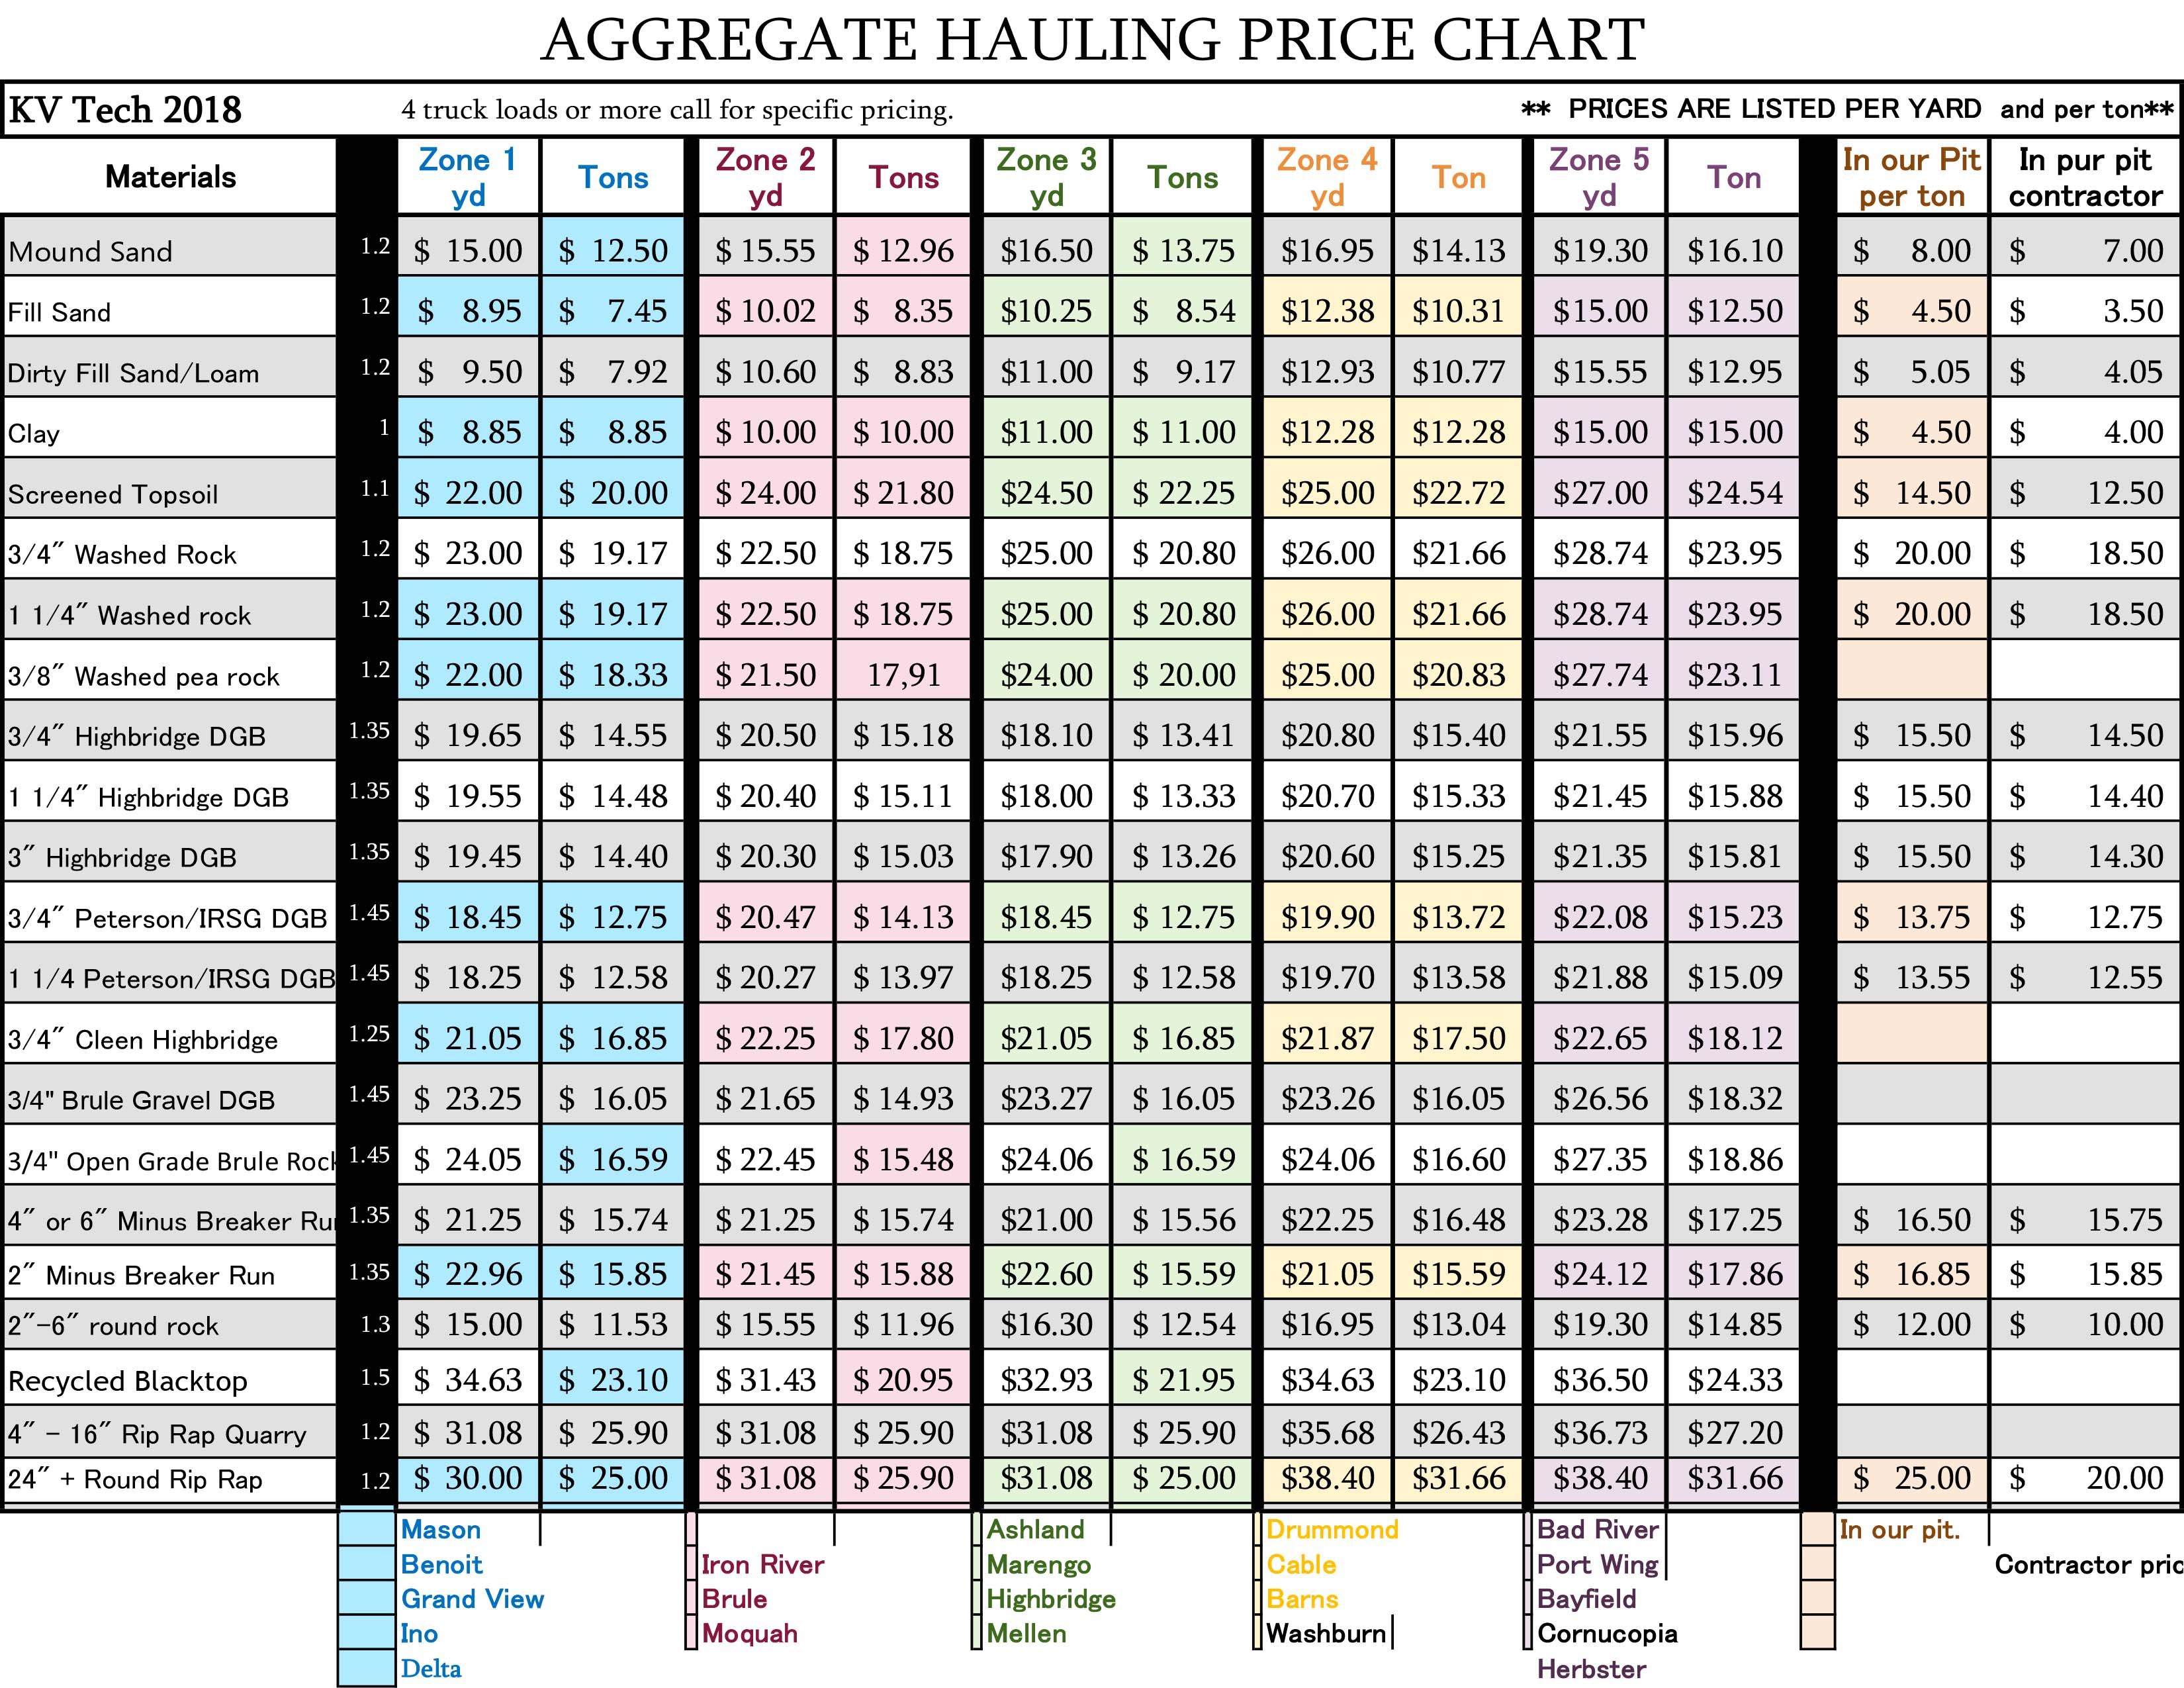 2018 Aggregate Hauling Price Chart